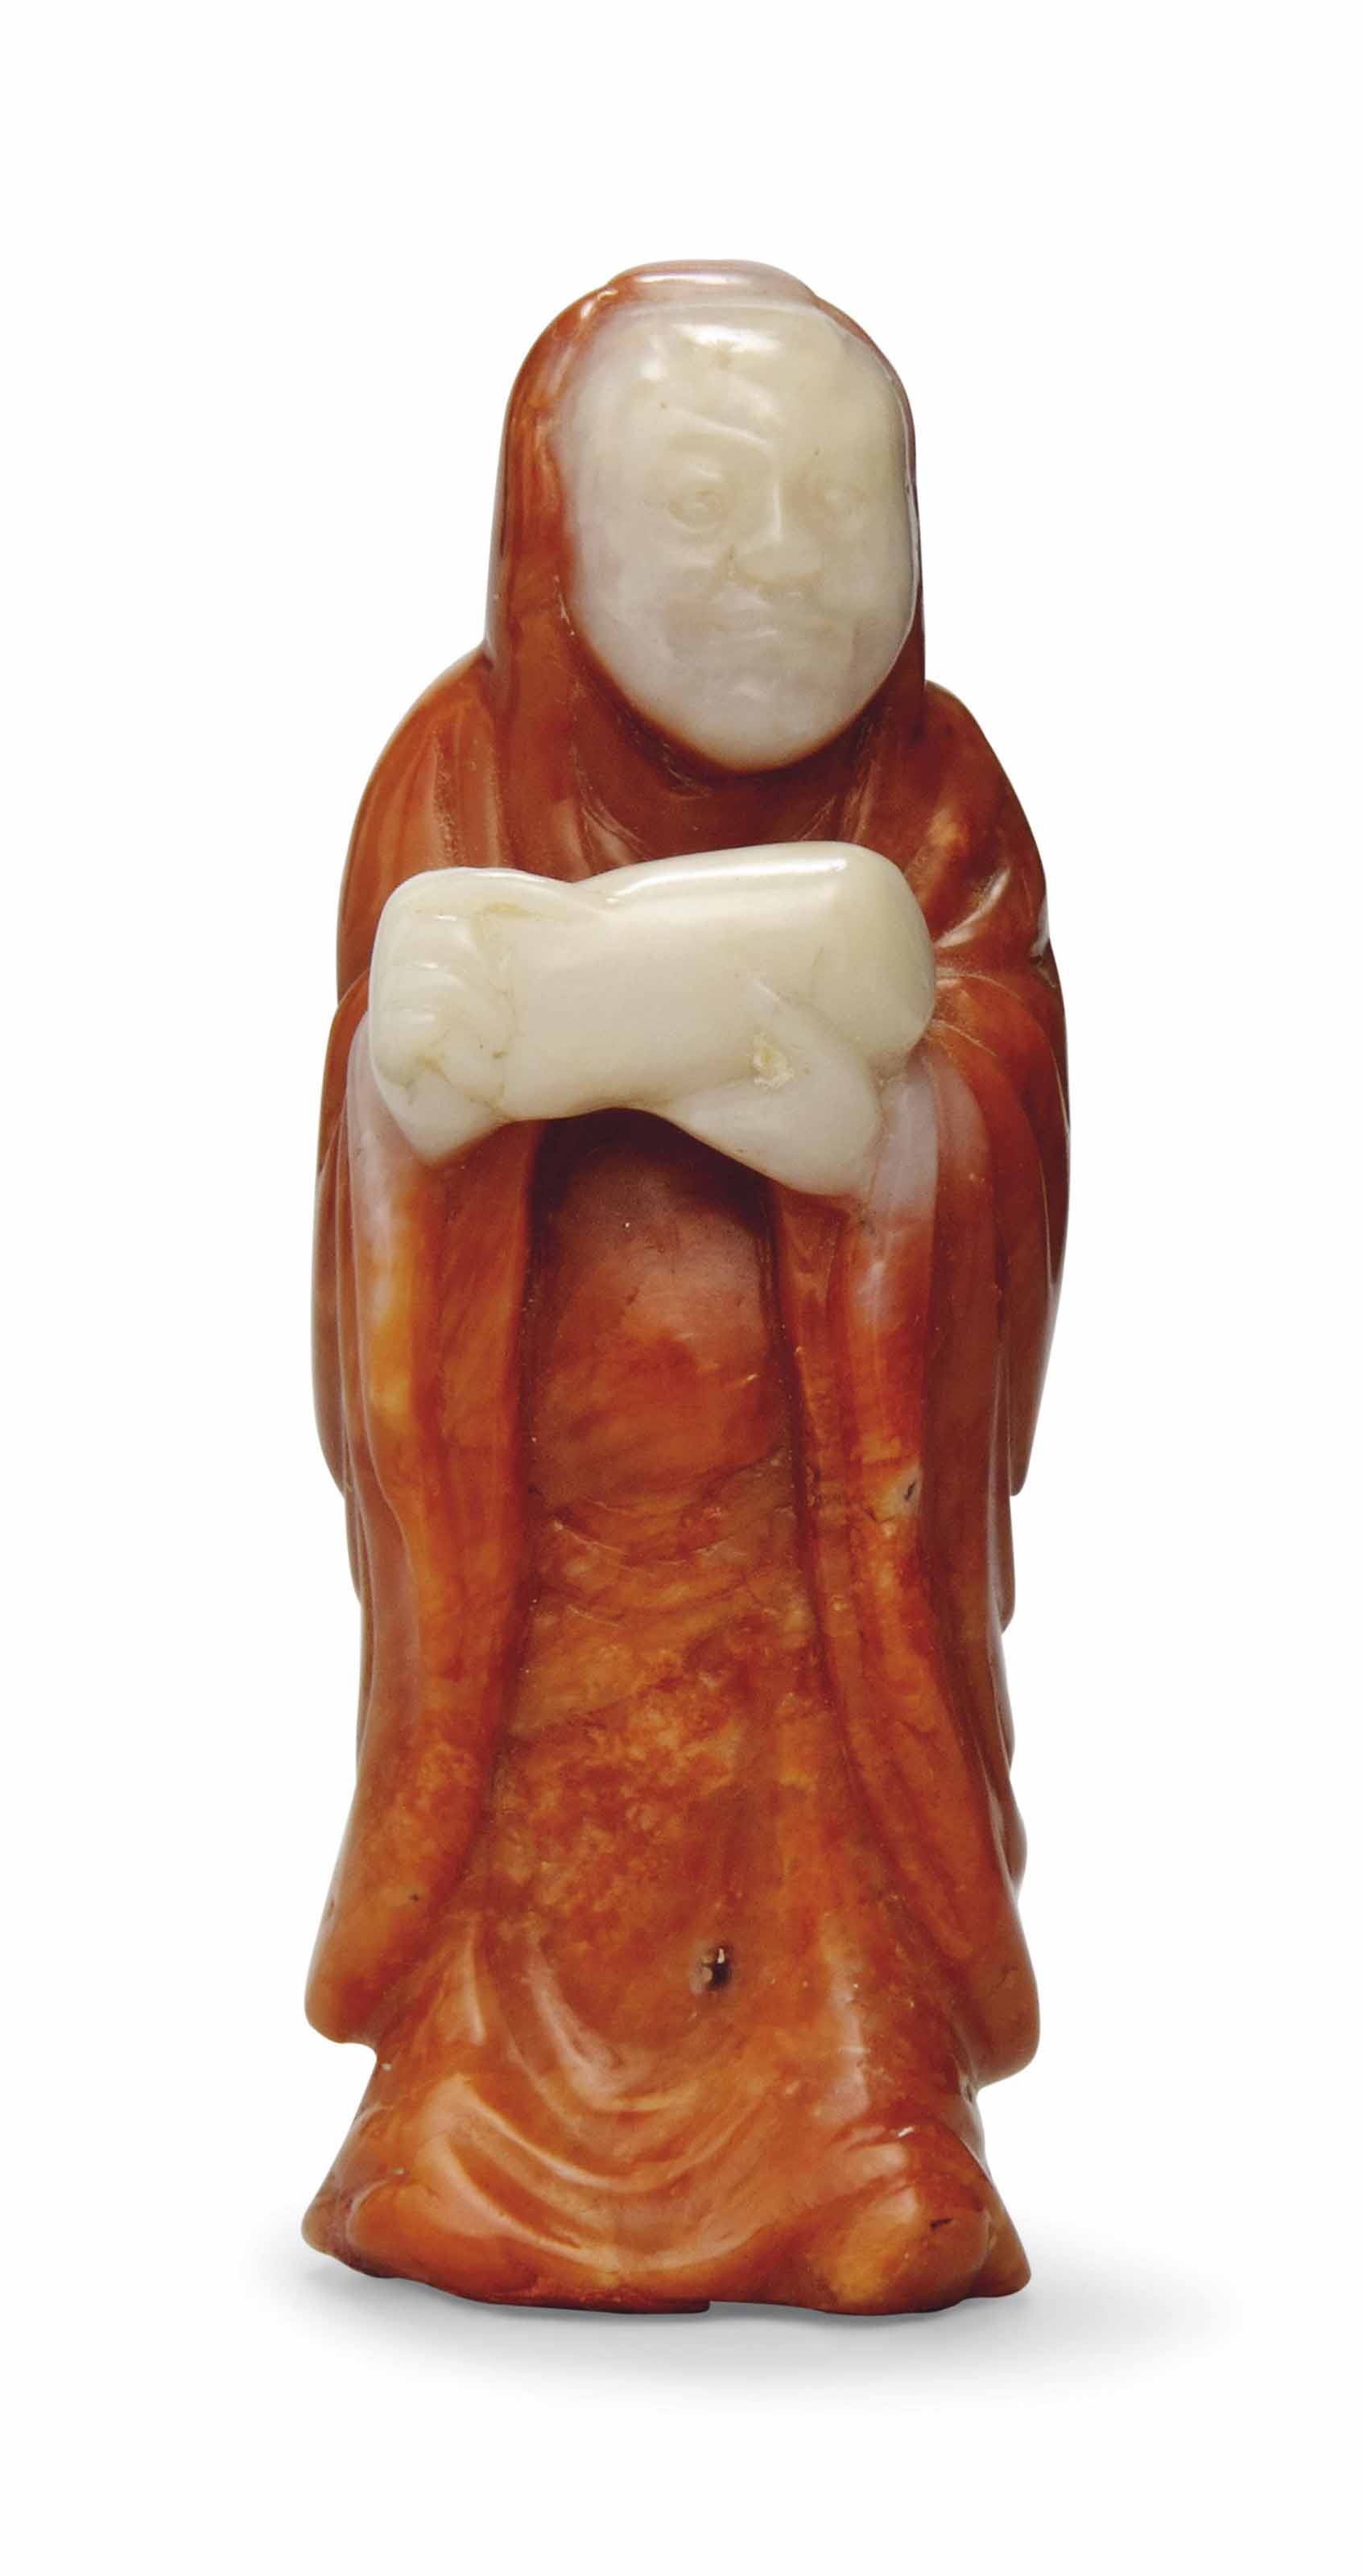 A CARNELIAN AGATE CARVING OF A